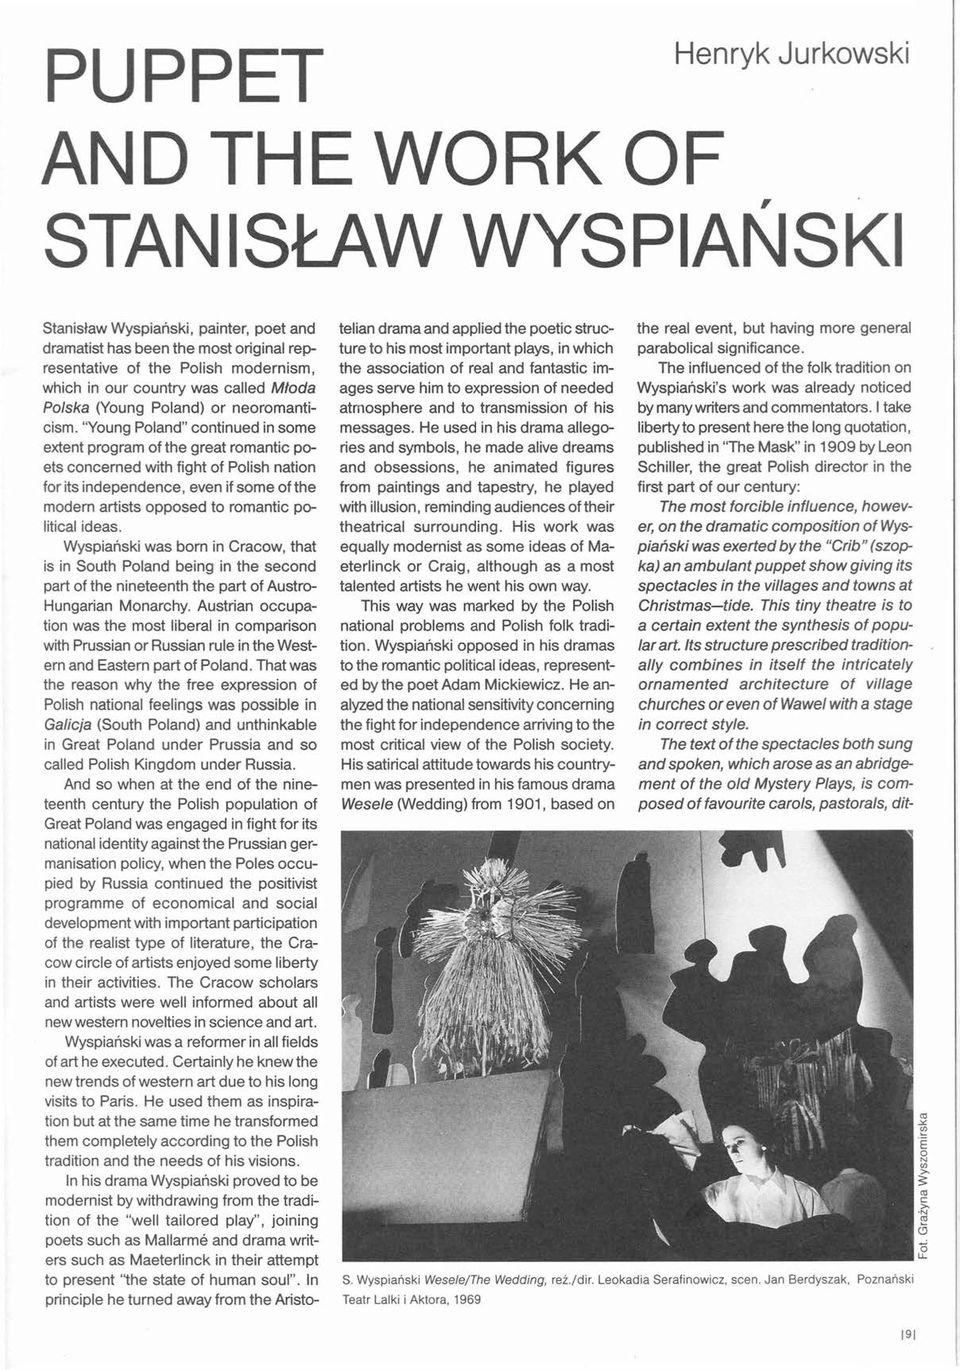 """Young Poland"" continued in some extent program ot the great romantic poets concerned with tight ot Polish nation tor its independence, even it some ot the modern artists opposed to ramantic"